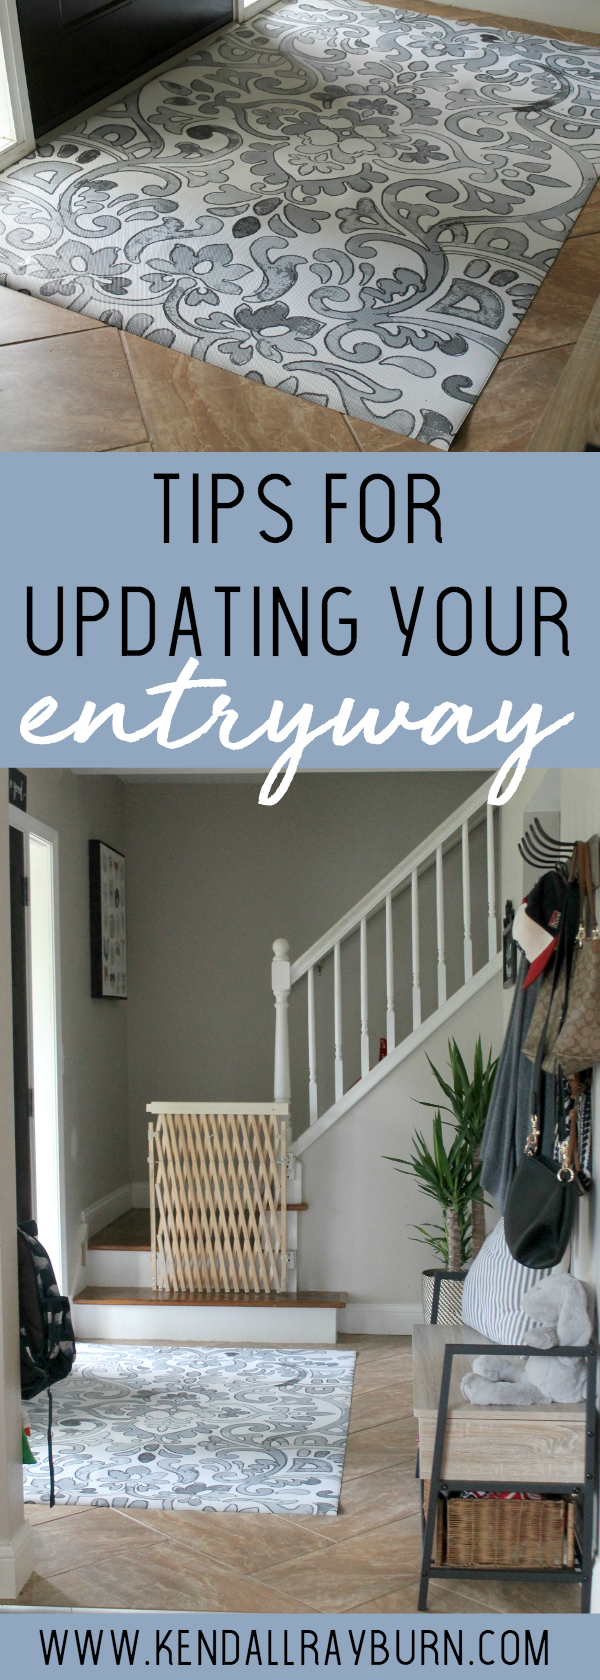 Updating the Entryway for Fall